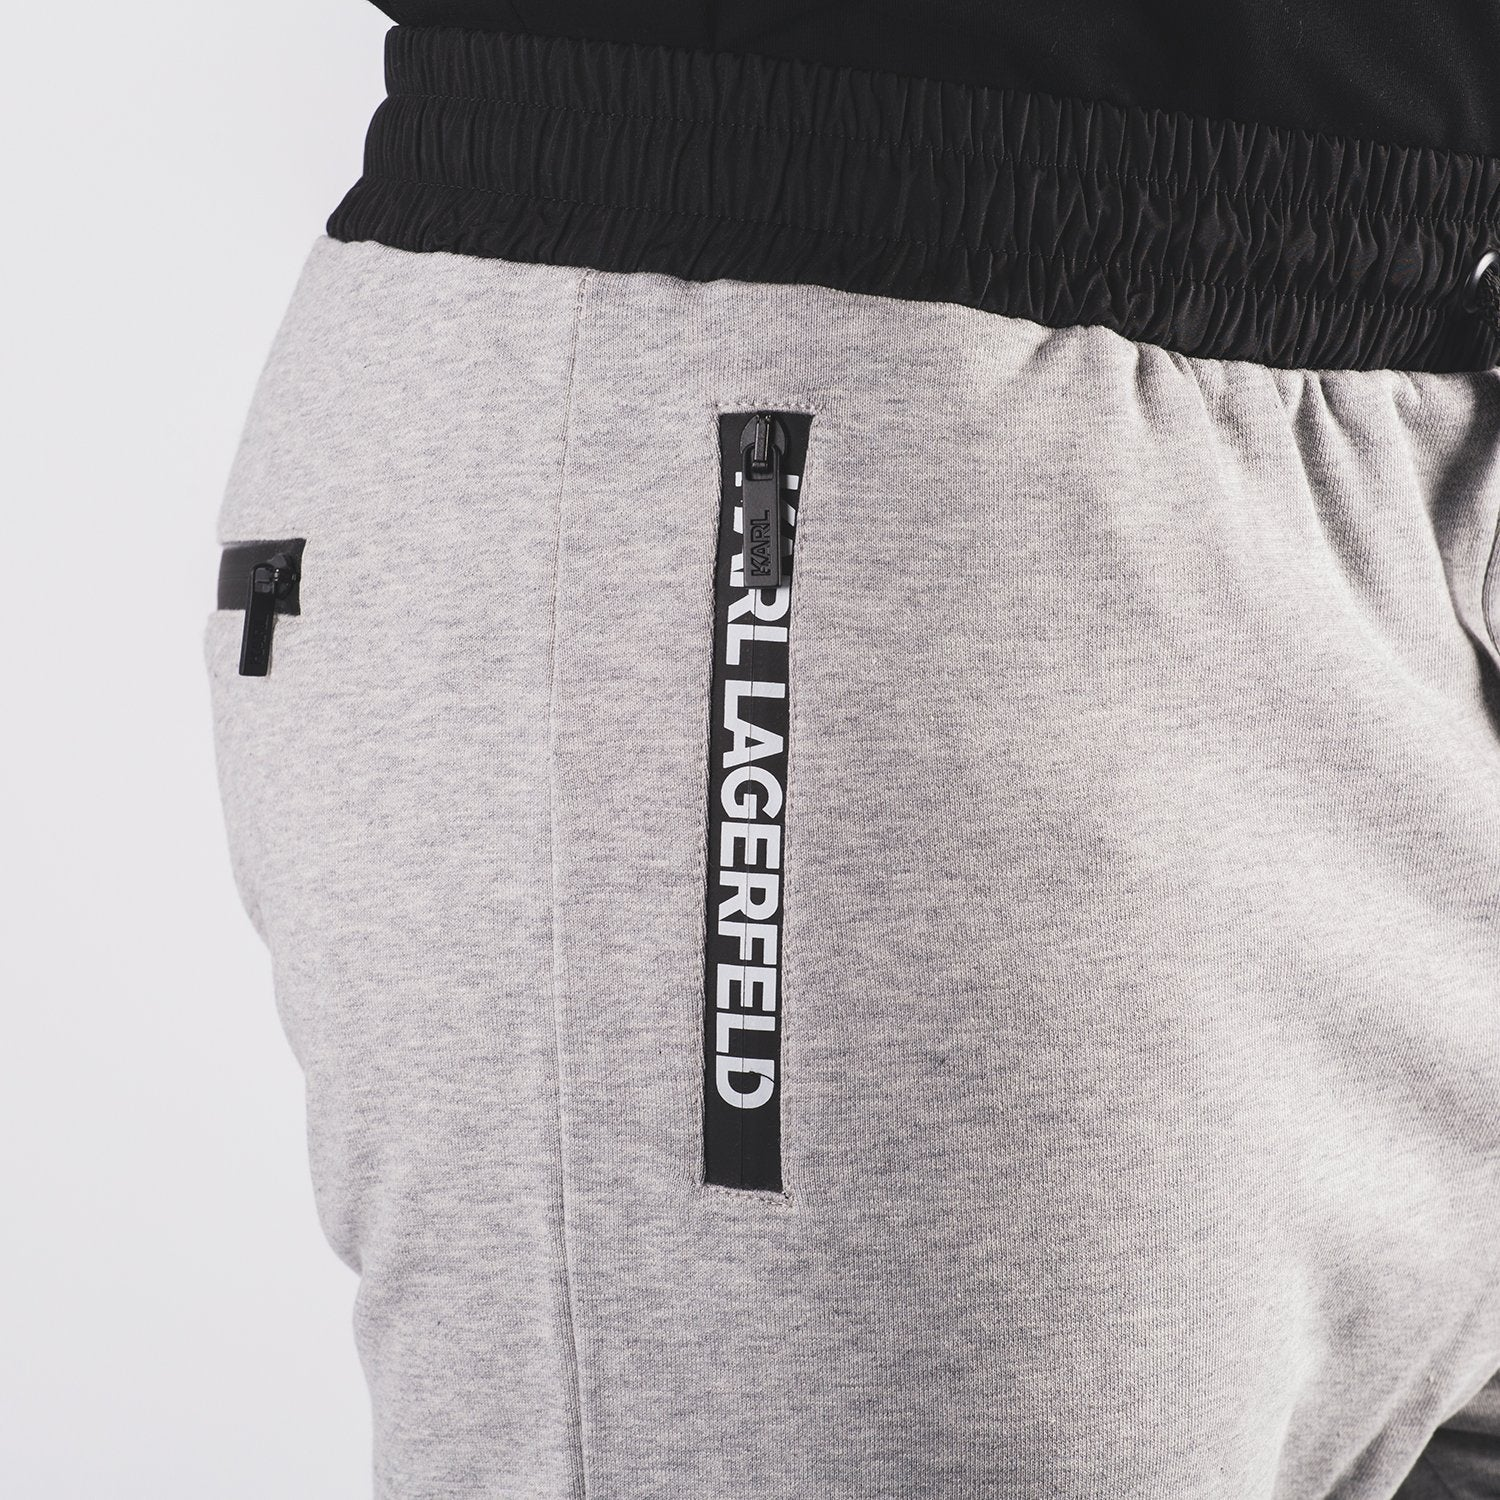 Karl Lagerfeld Sweat Pants - Leonard Silver